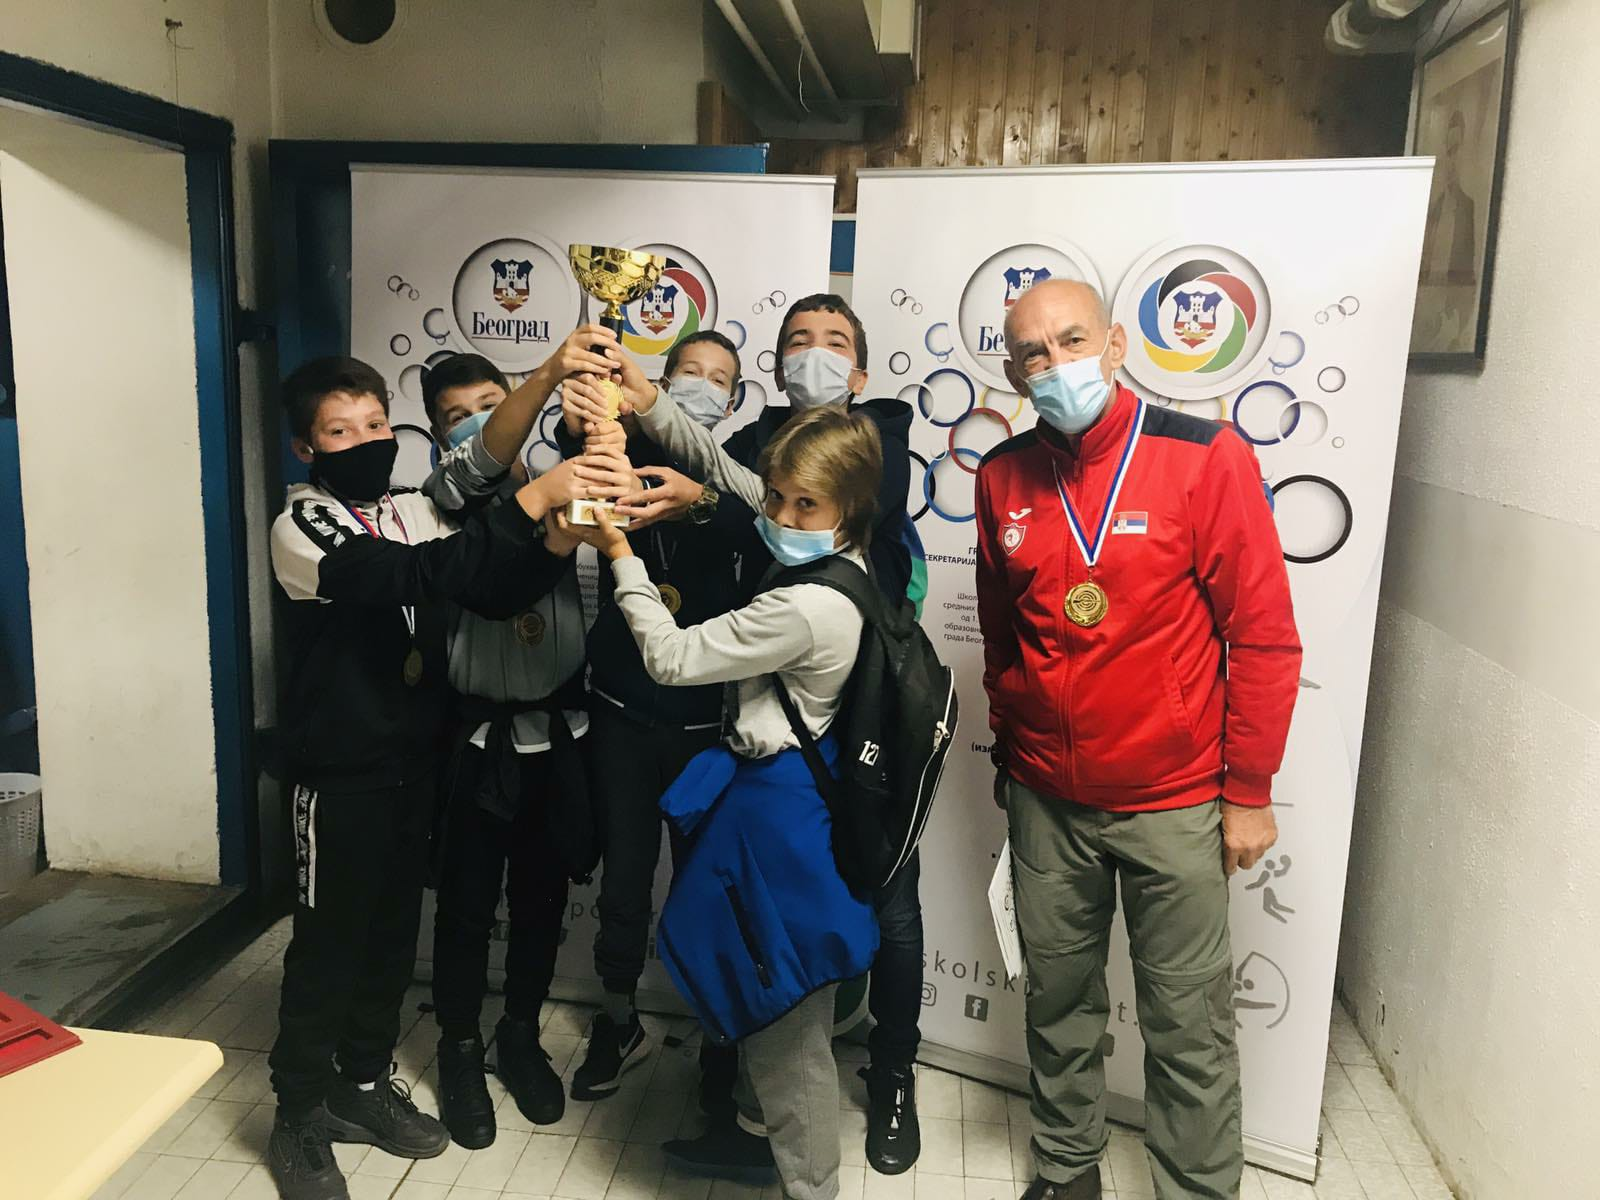 """CITY SHOOTING CHAMPIONSHIP-ELEMENTARY SCHOOL STUDENTS-INDIVIDUAL AND TEAM-08.10.2020. YEARS-SHOOTING CLUB """"NEW BELGRADE-USCE"""